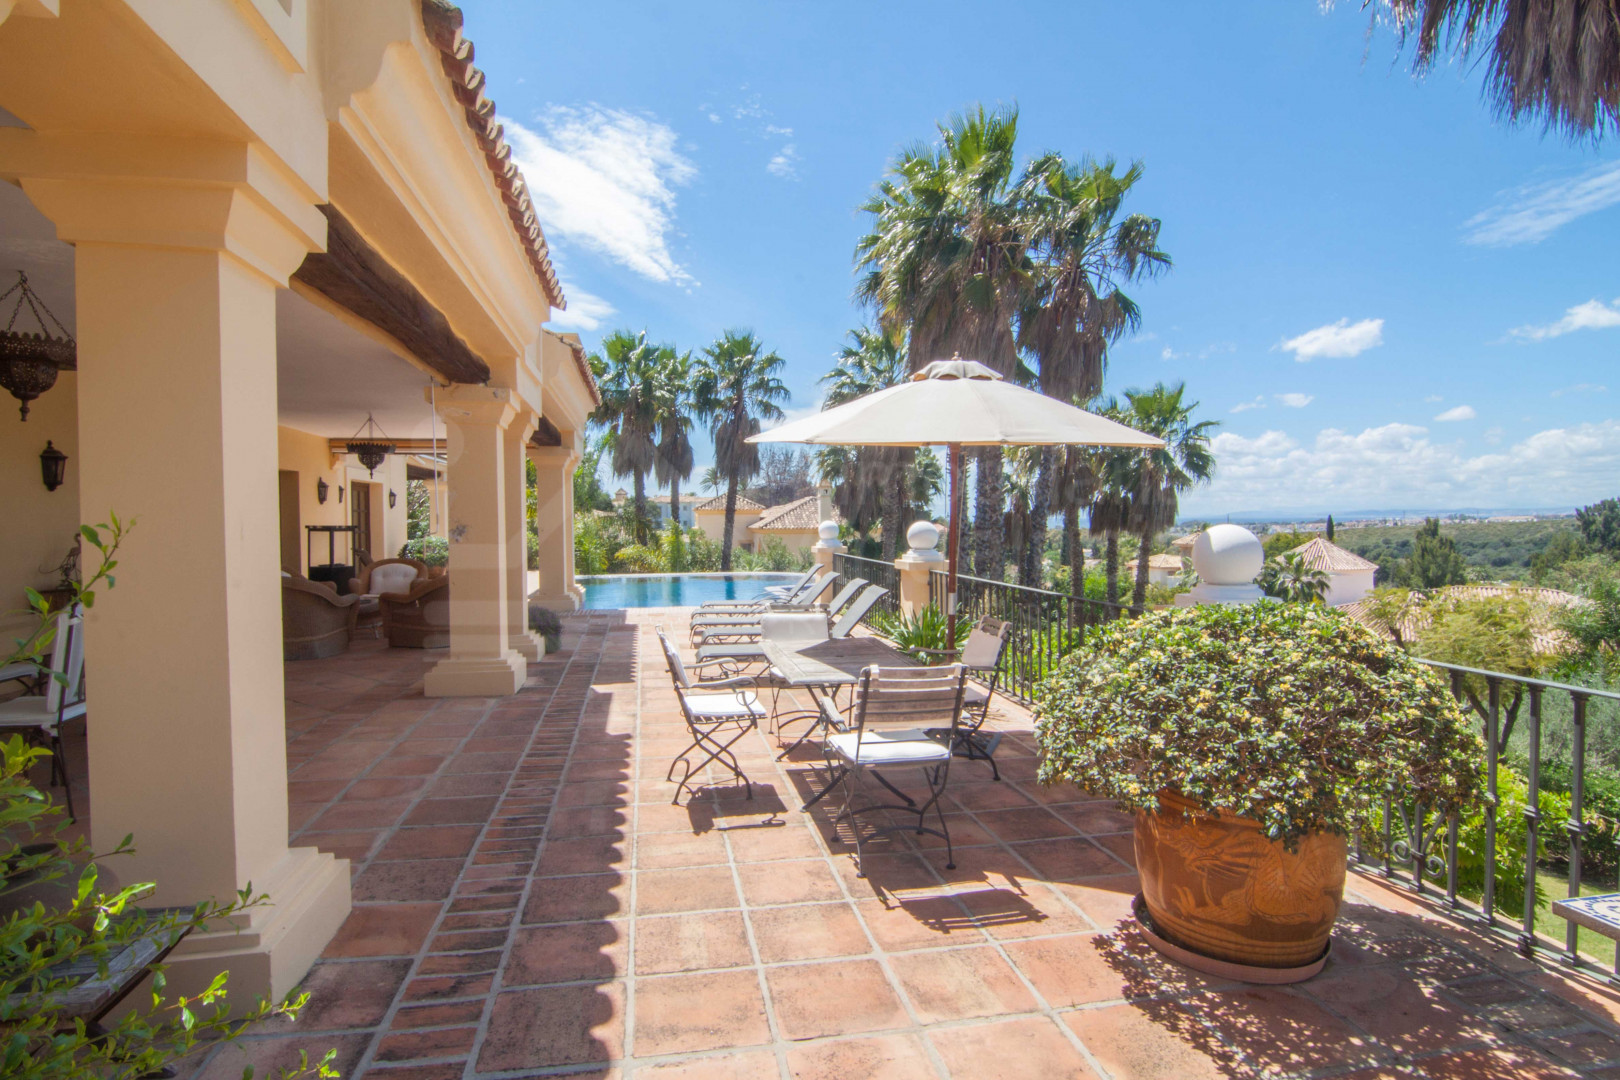 Superb 6-bedroom villa for sale overlooking El Paraíso Golf, Estepona